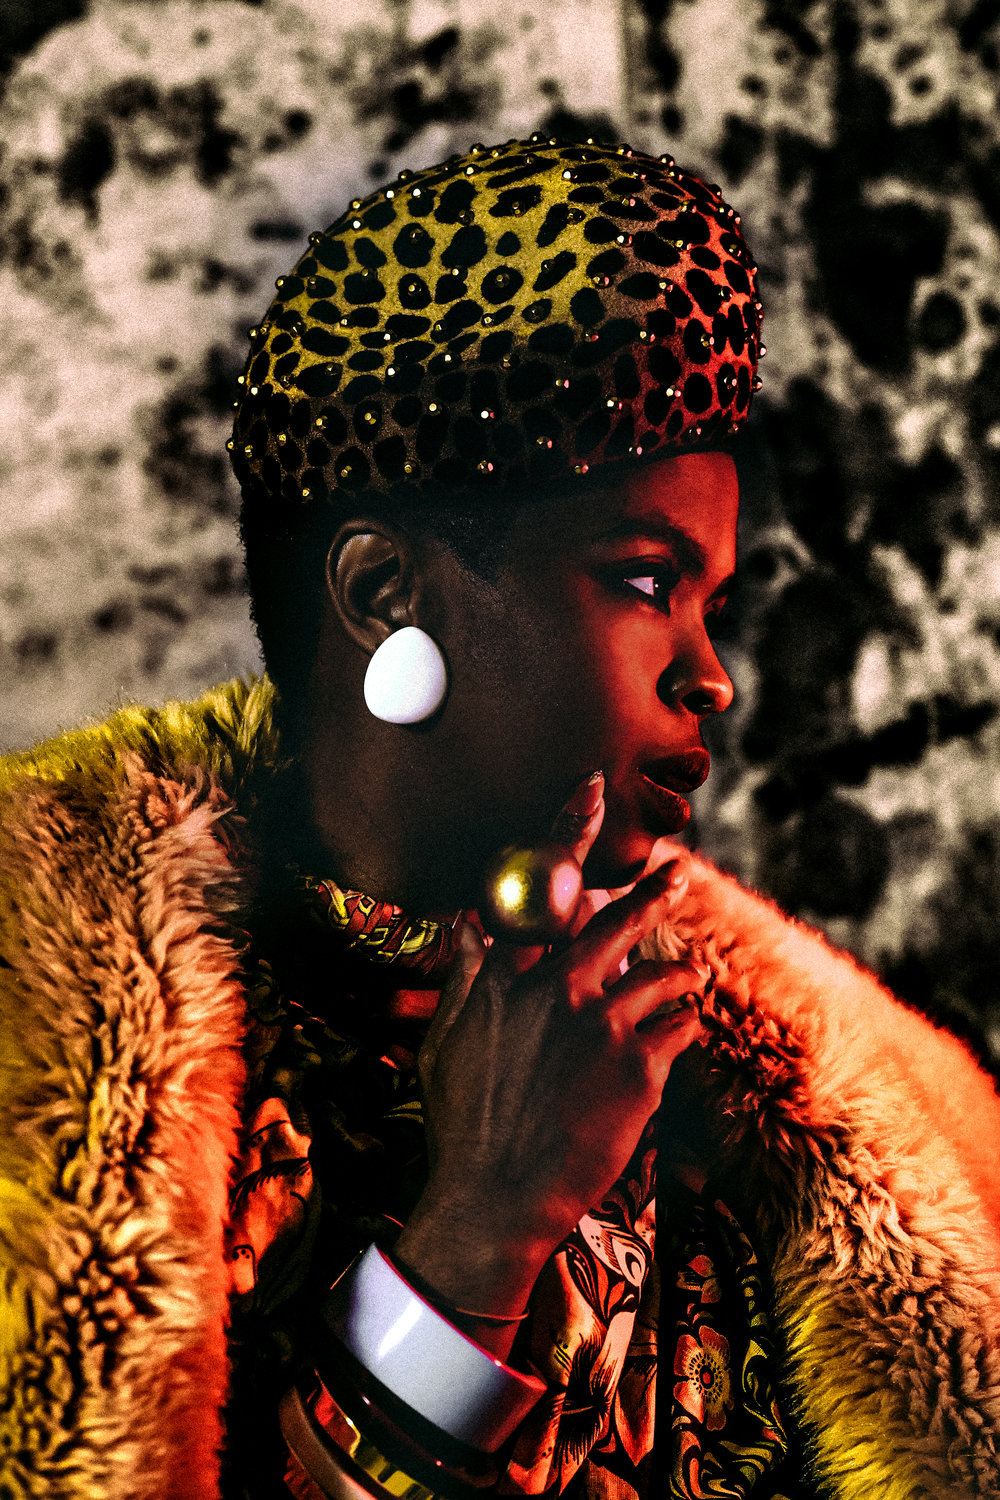 lauryn-hill-dapper-lou-dapper-studios-20-years-miseducation+lauryn+hill-2.jpg